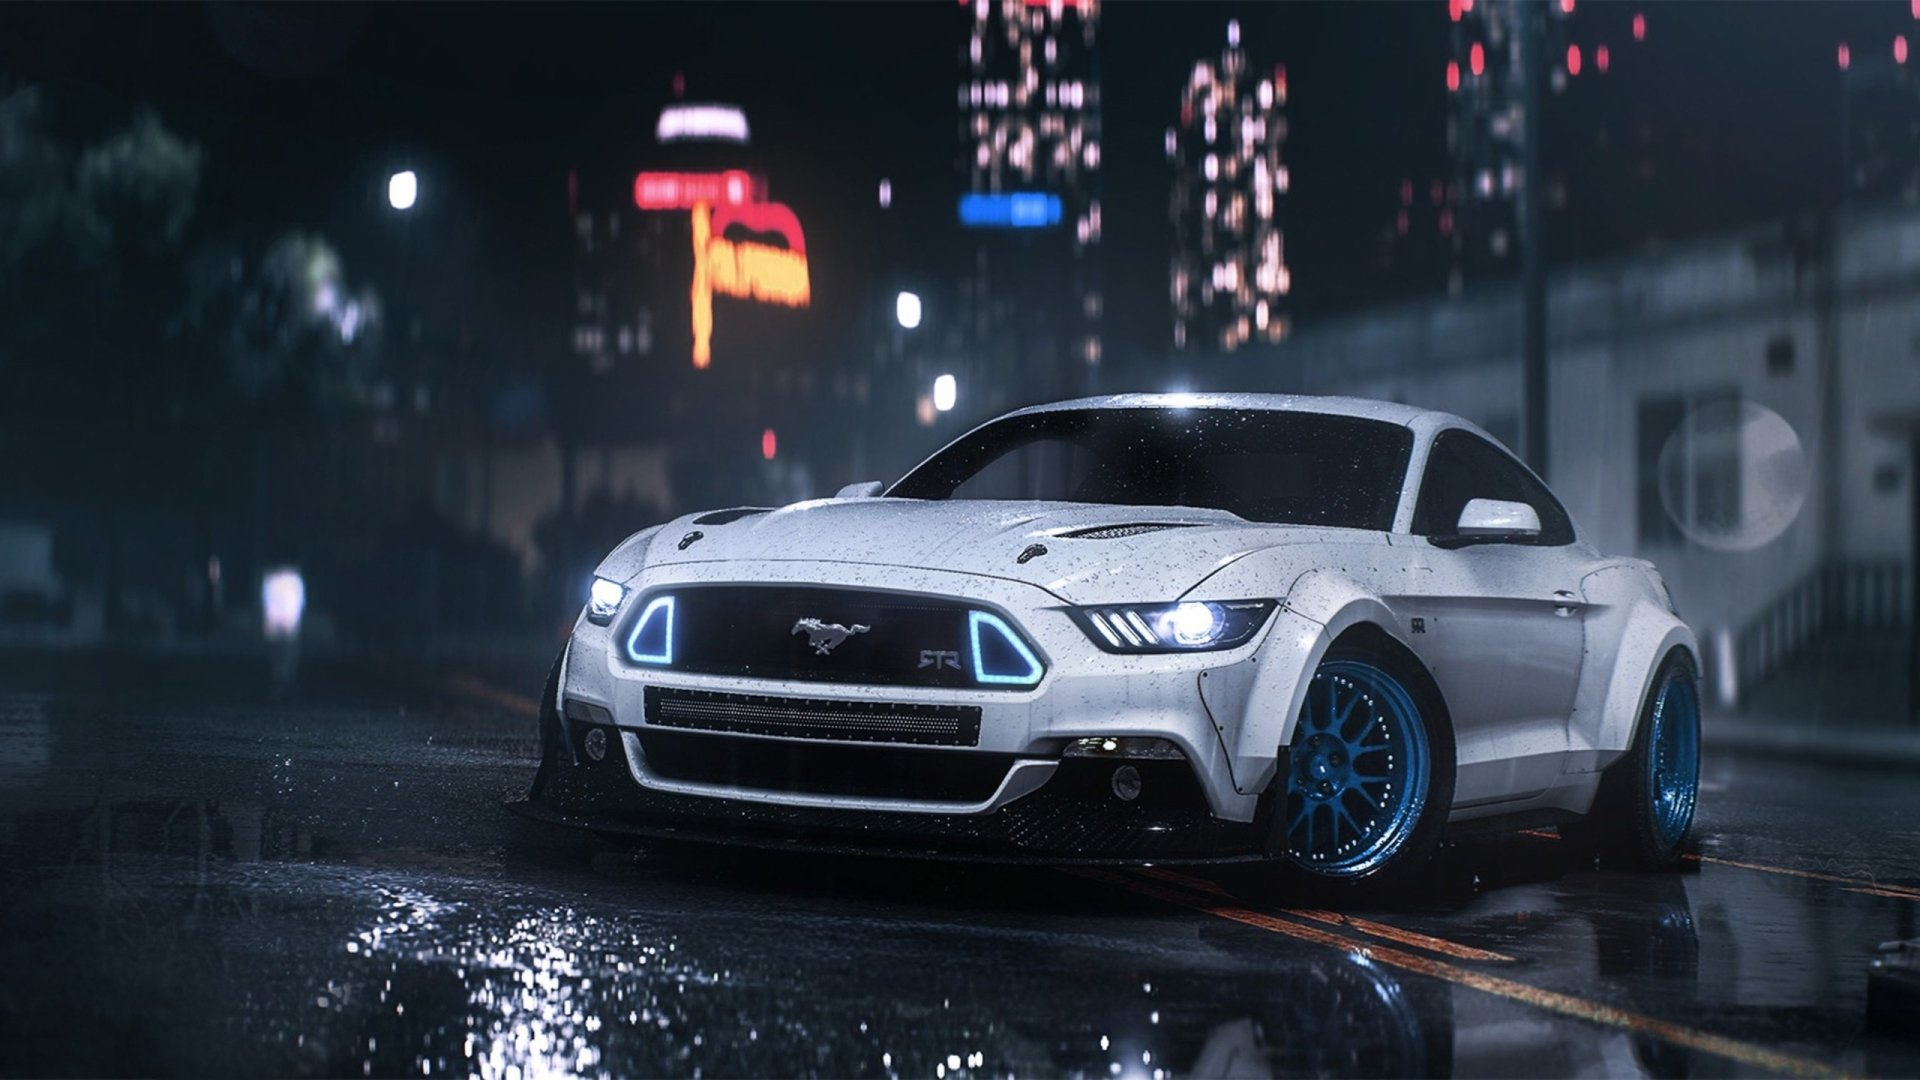 45 Need For Speed Payback Hd Wallpapers Background Images